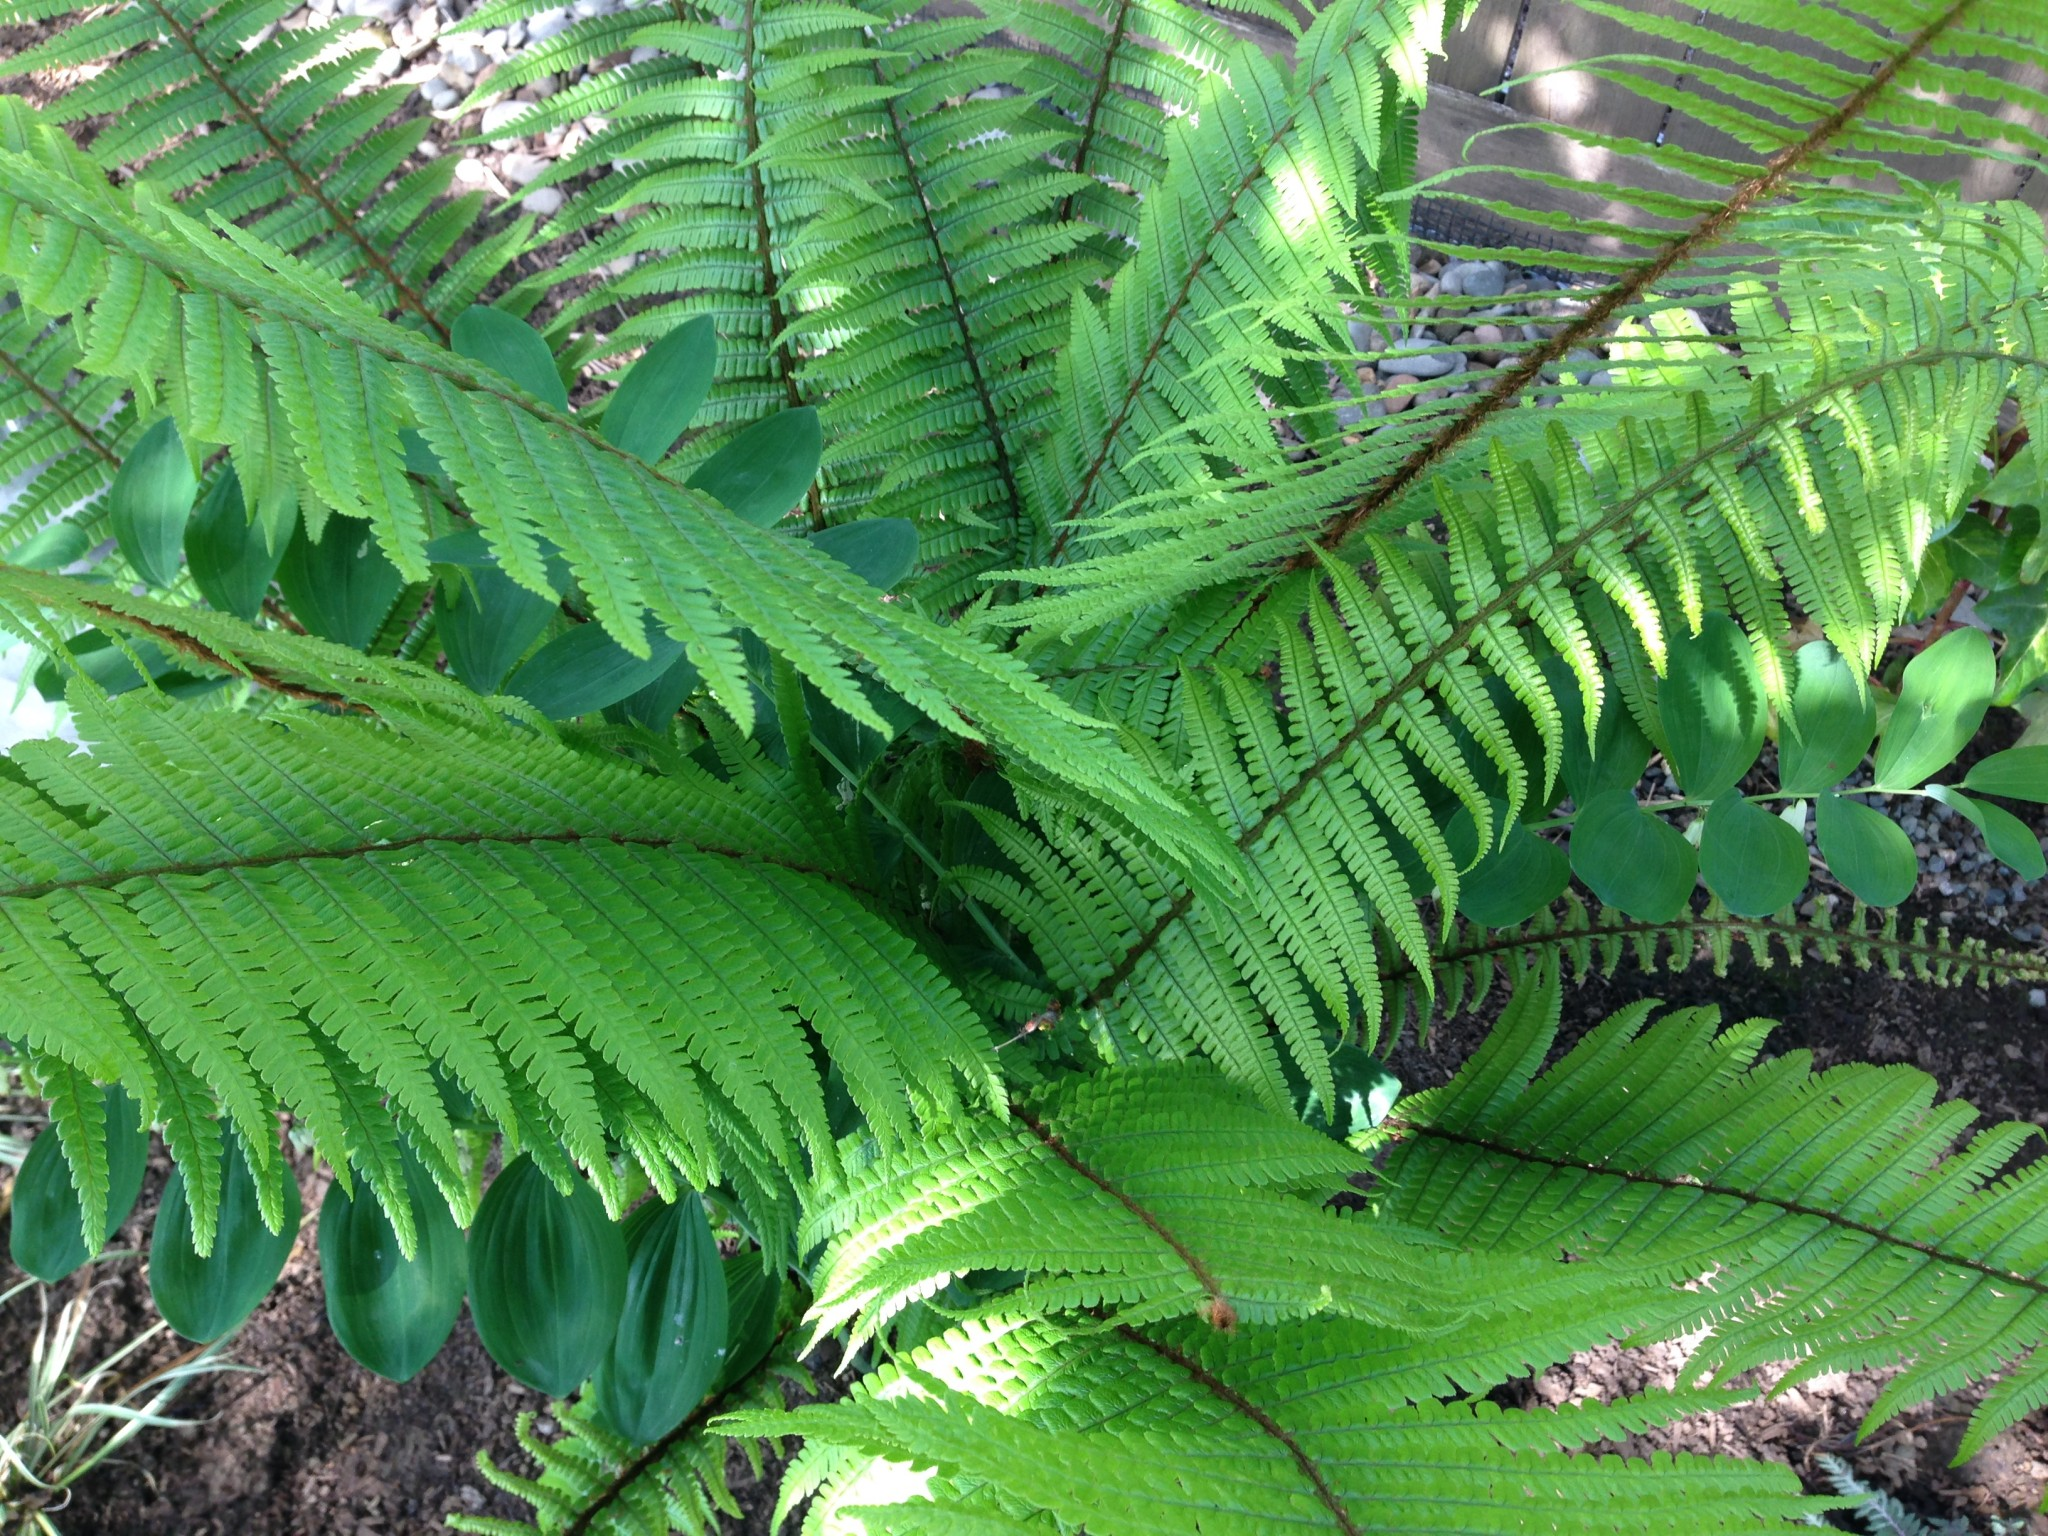 Dryopteris wallachiana aka Walliches Wood Fern -- looking good one year after transplant.